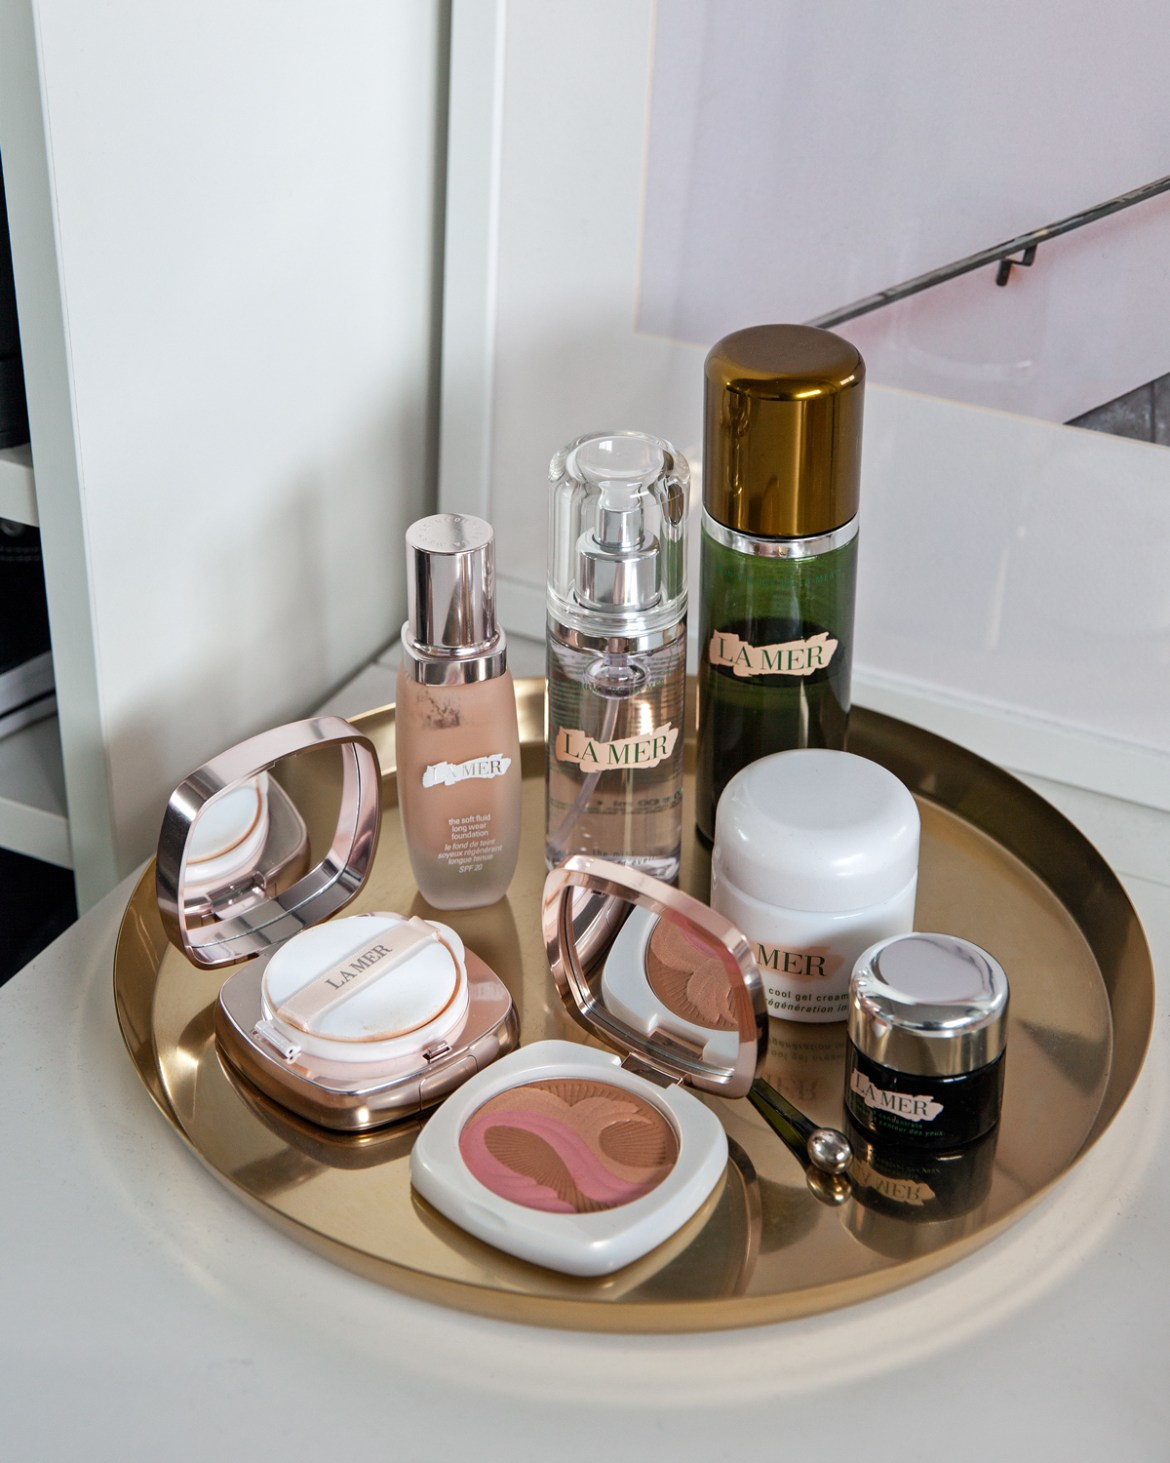 La Mer bronzer and favourites from Australian beauty blogger Inspiring Wit